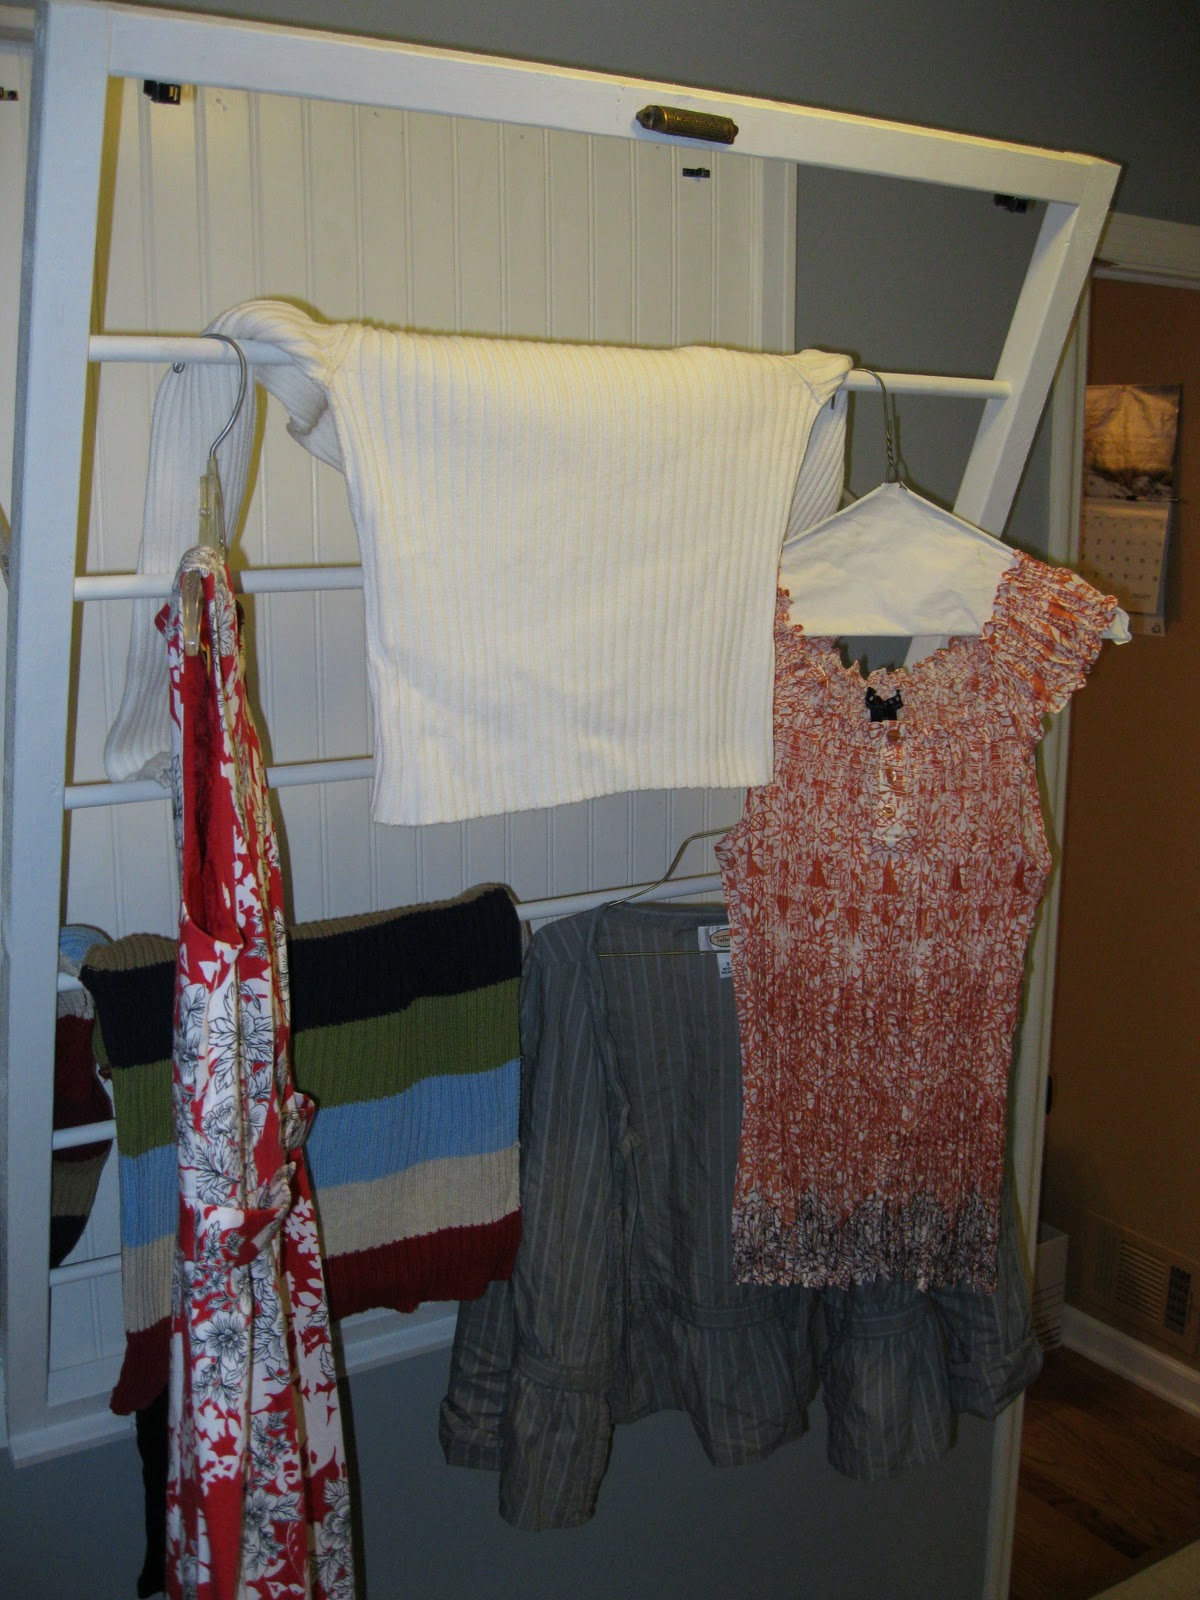 between the rafters ballard designs inspired laundry drying rack best birthday present ever